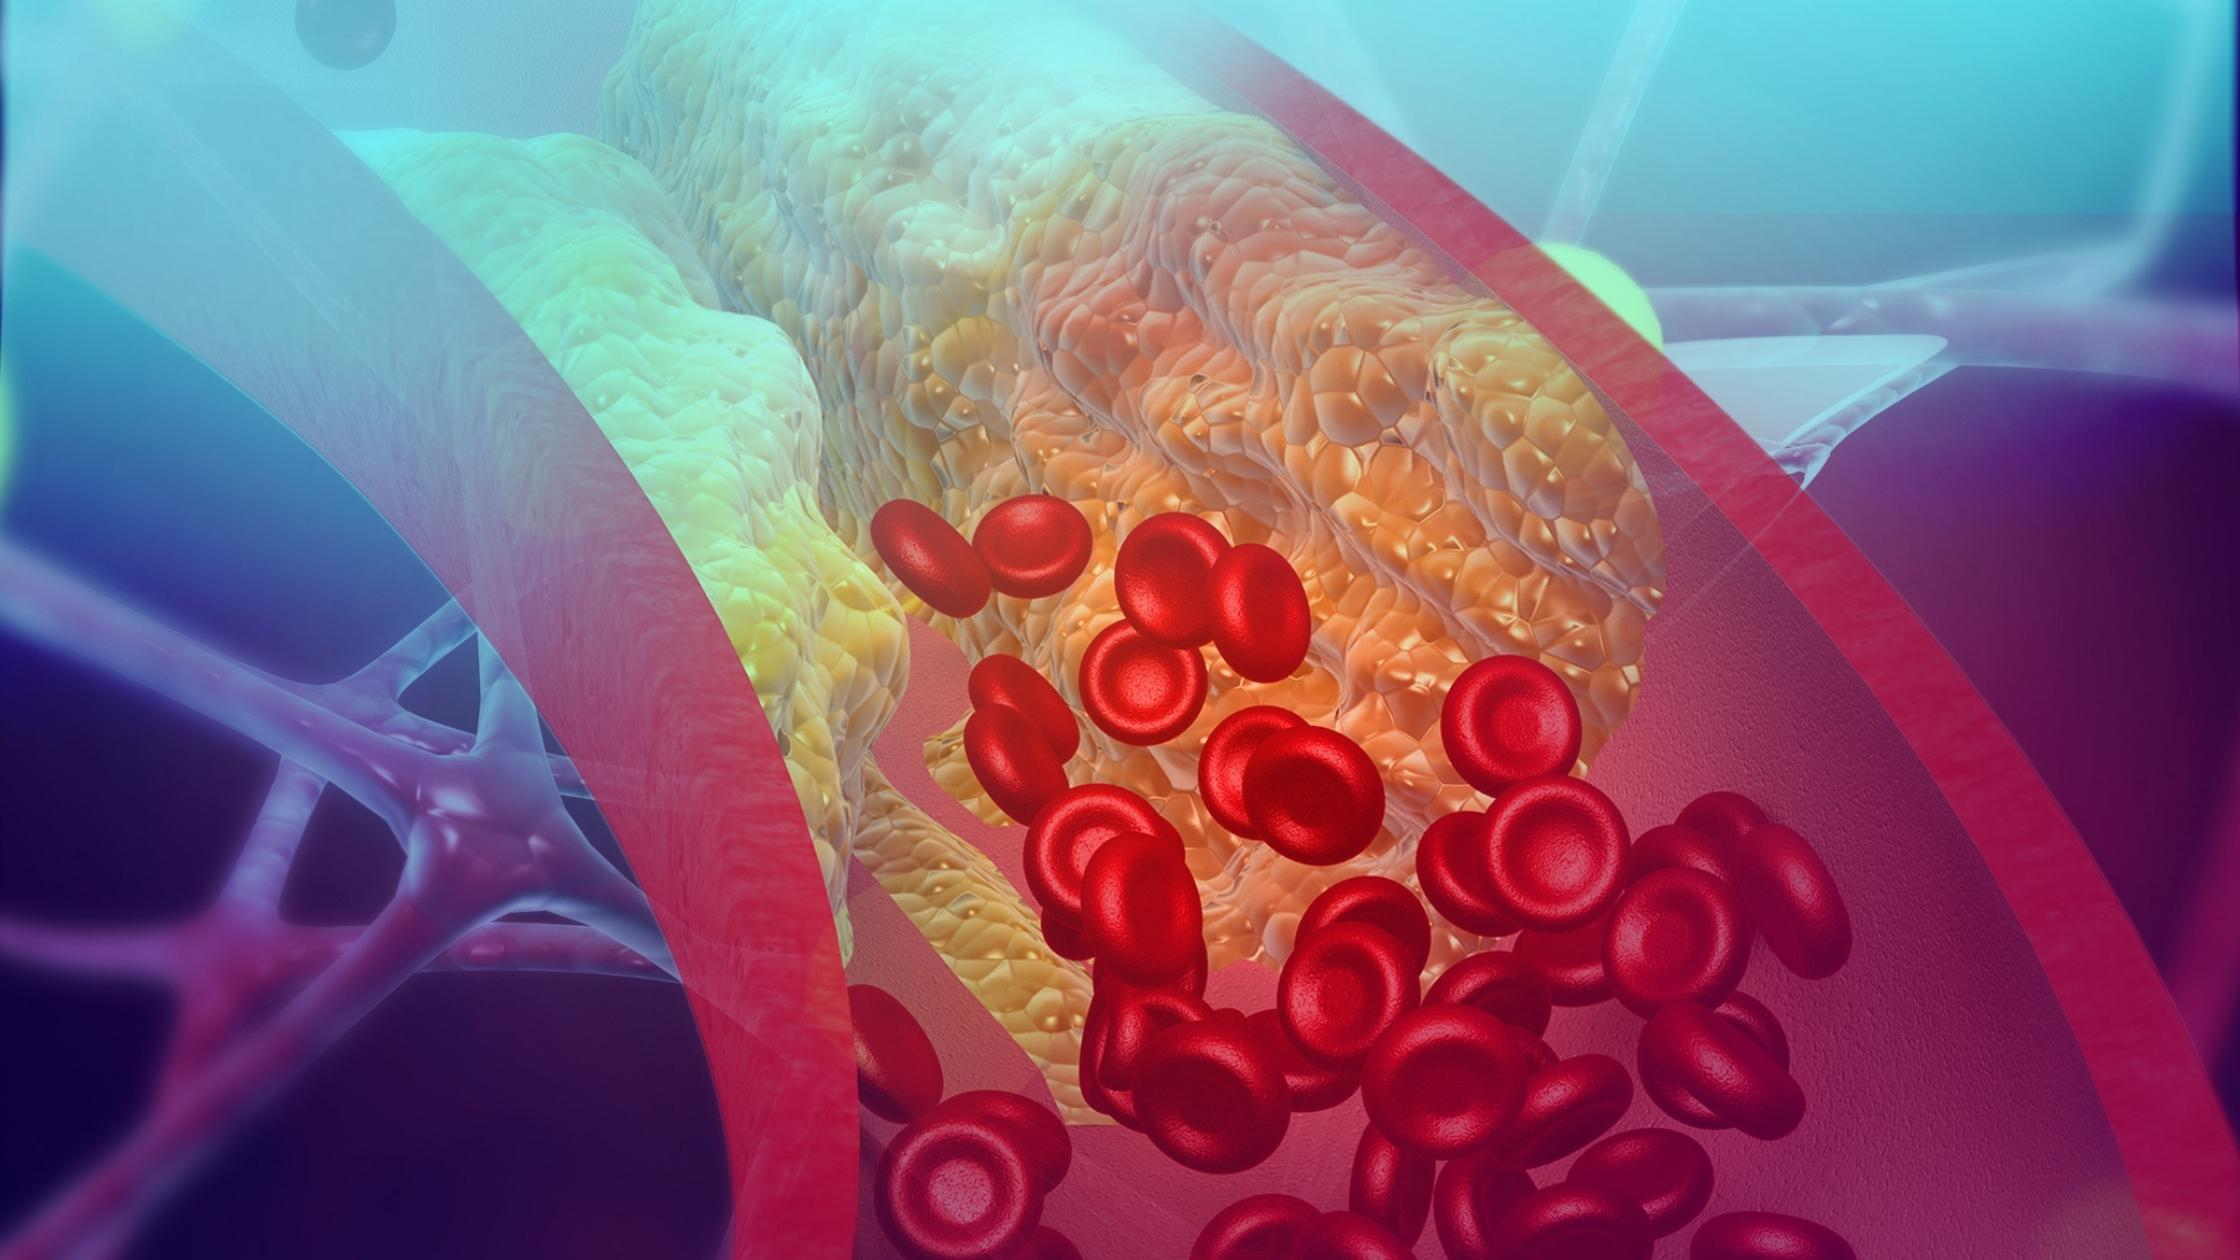 Vessel Atherosclerosis RBCs